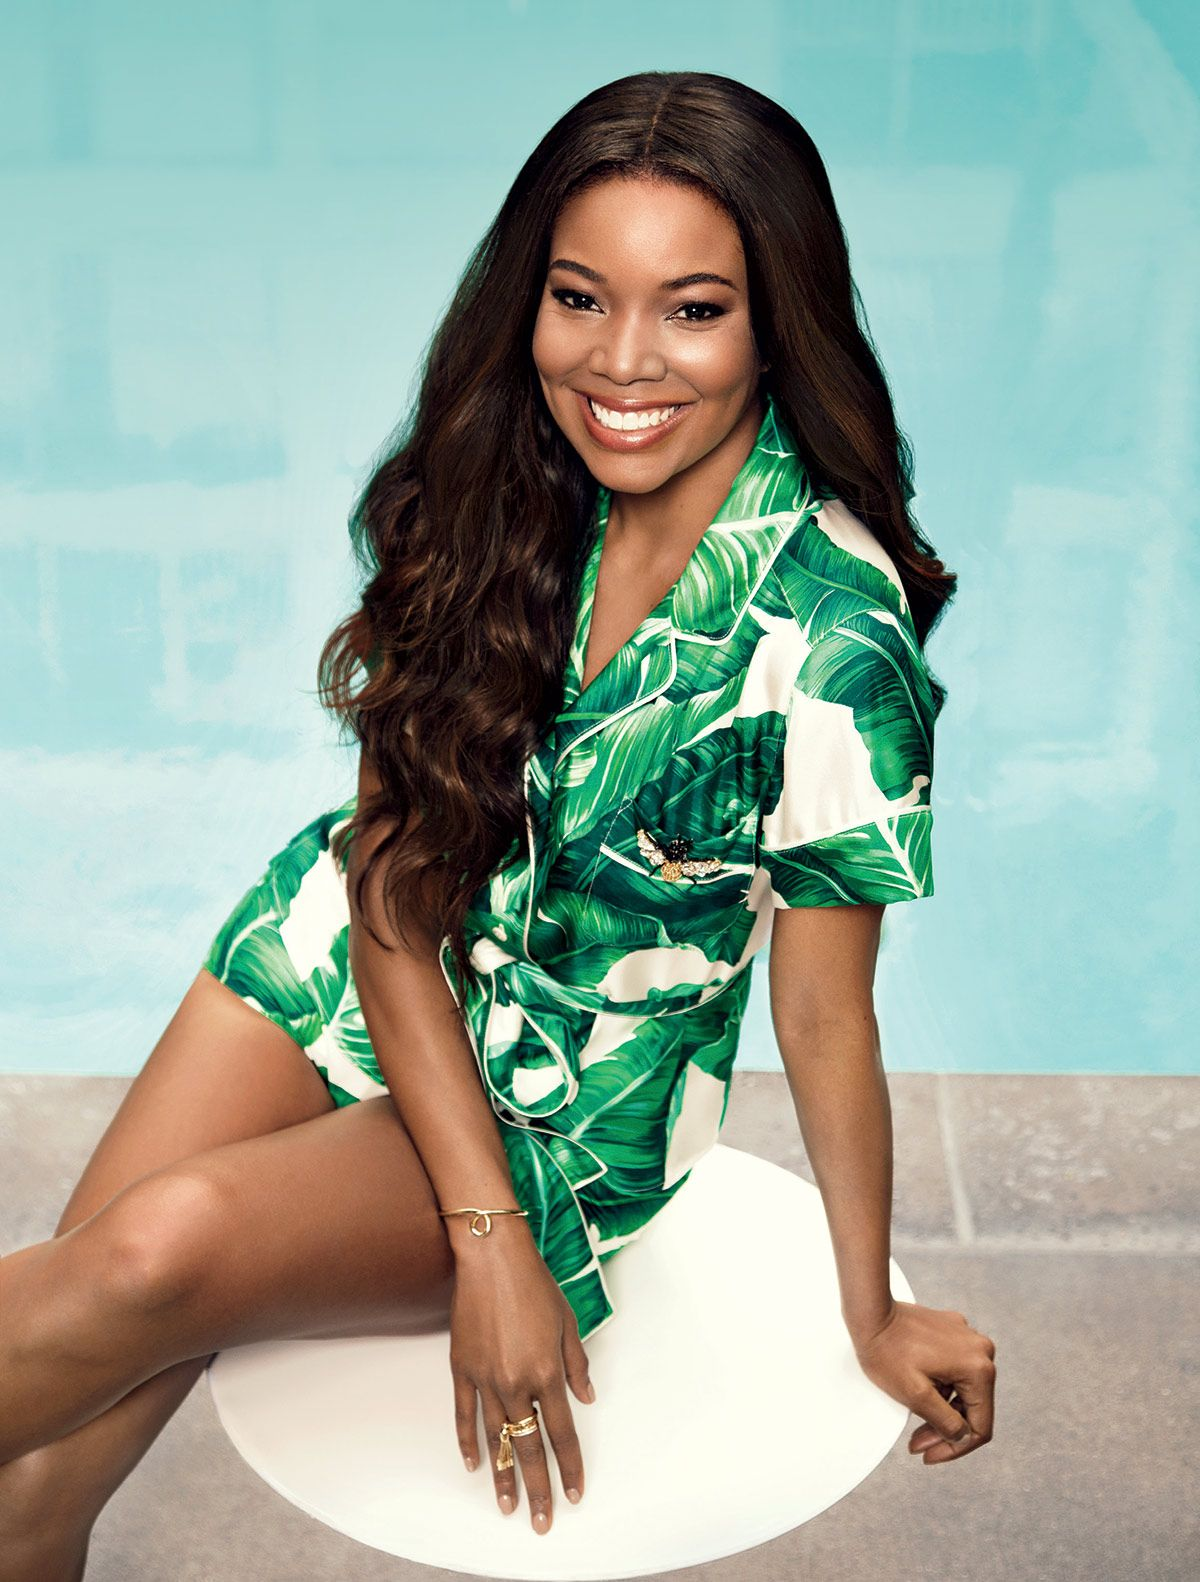 Chic Wallpaper For Iphone Gabrielle Union In Ocean Drive Magazine April 2016 Issue